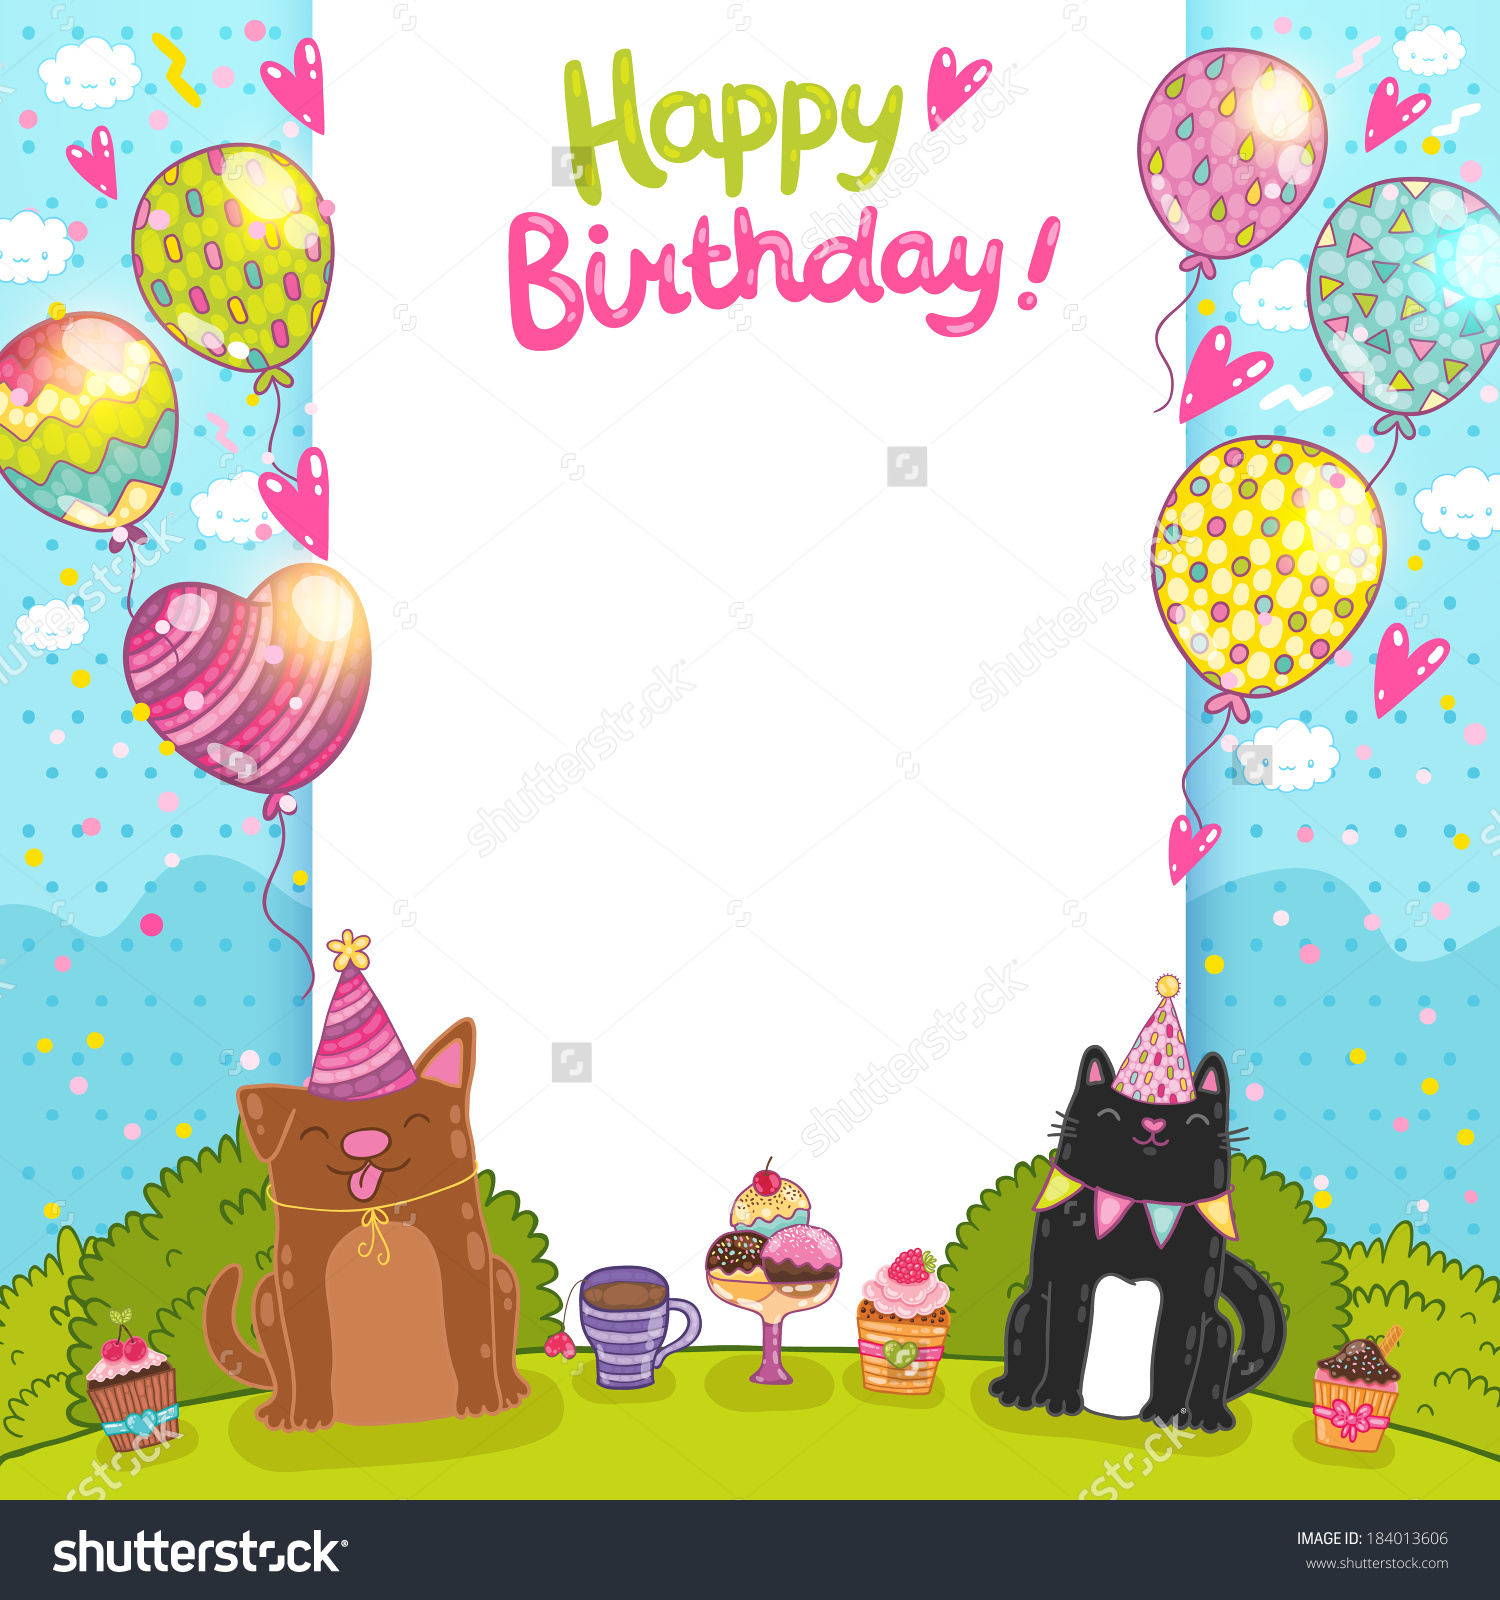 birthday frame clipart ; dog-and-cat-happy-birthday-clipart-4